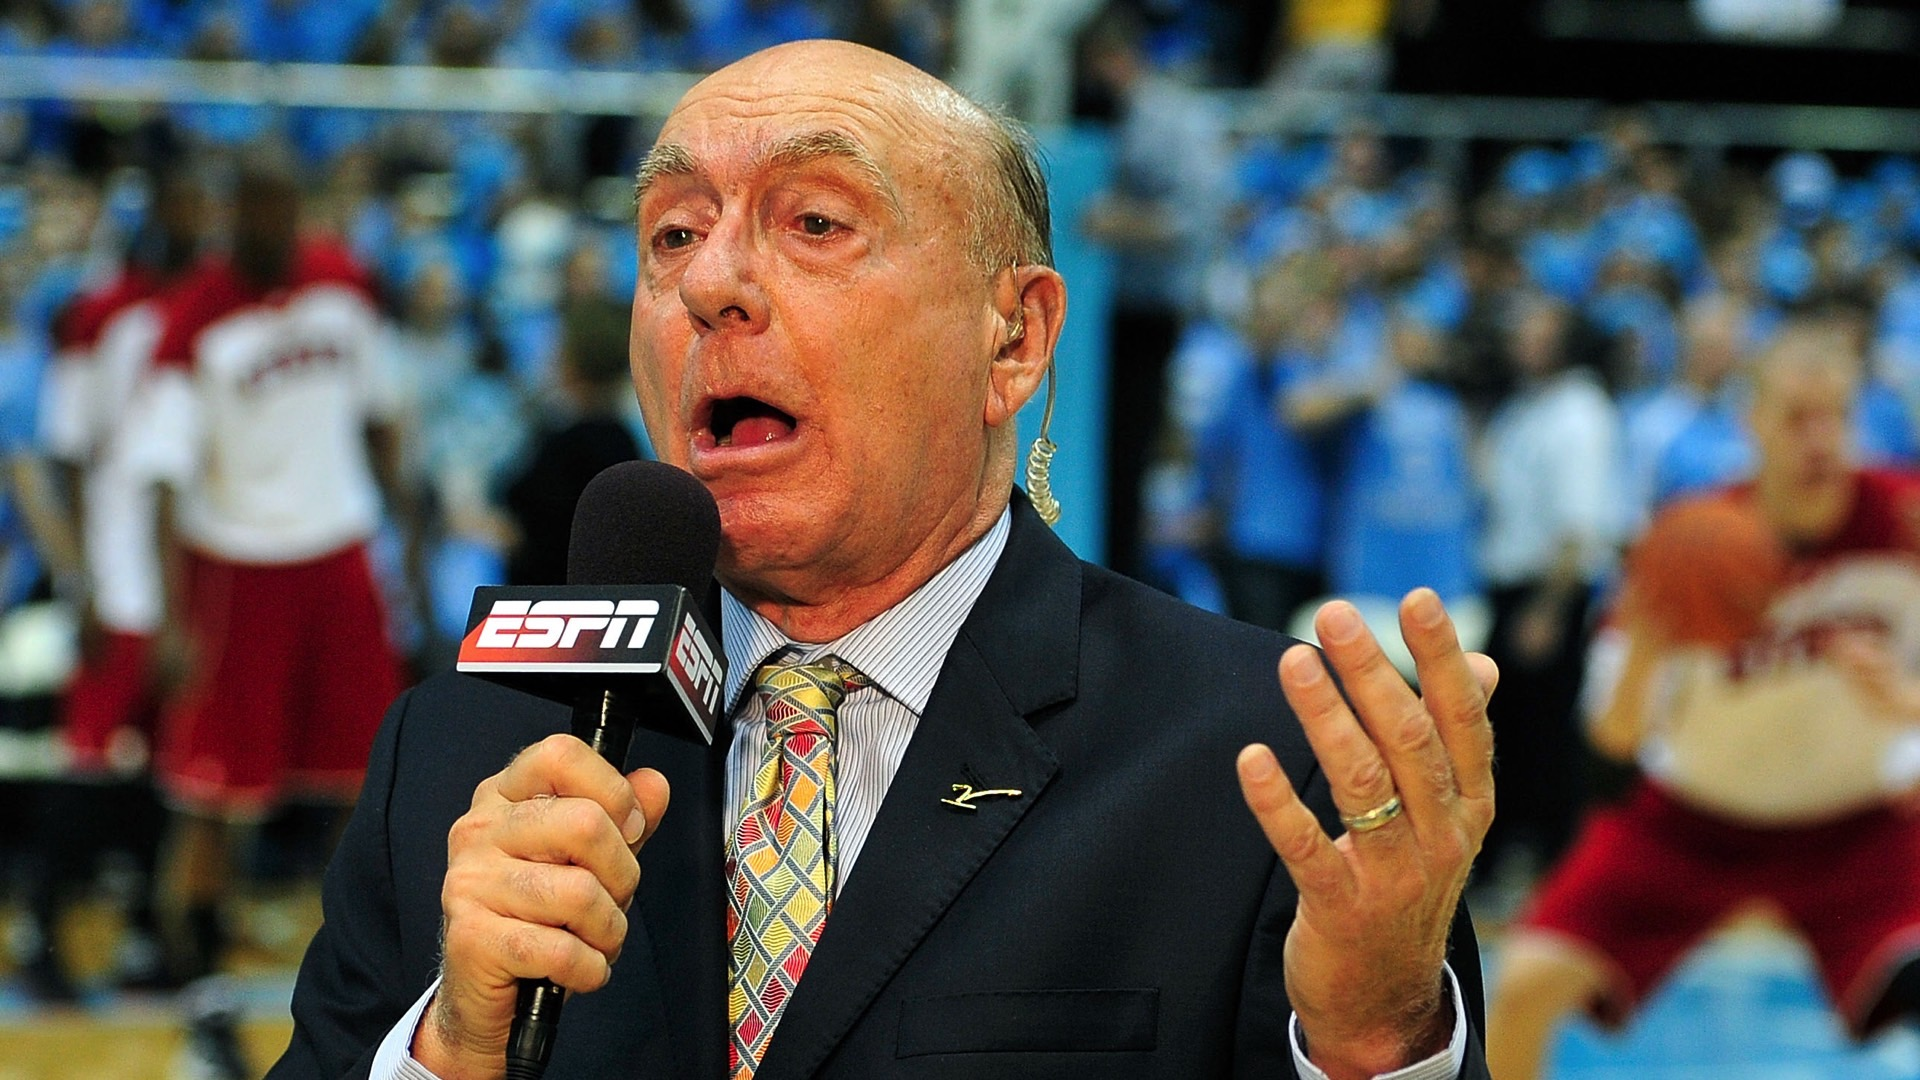 dick-vitale-020715-FTR-GETTY.jpeg